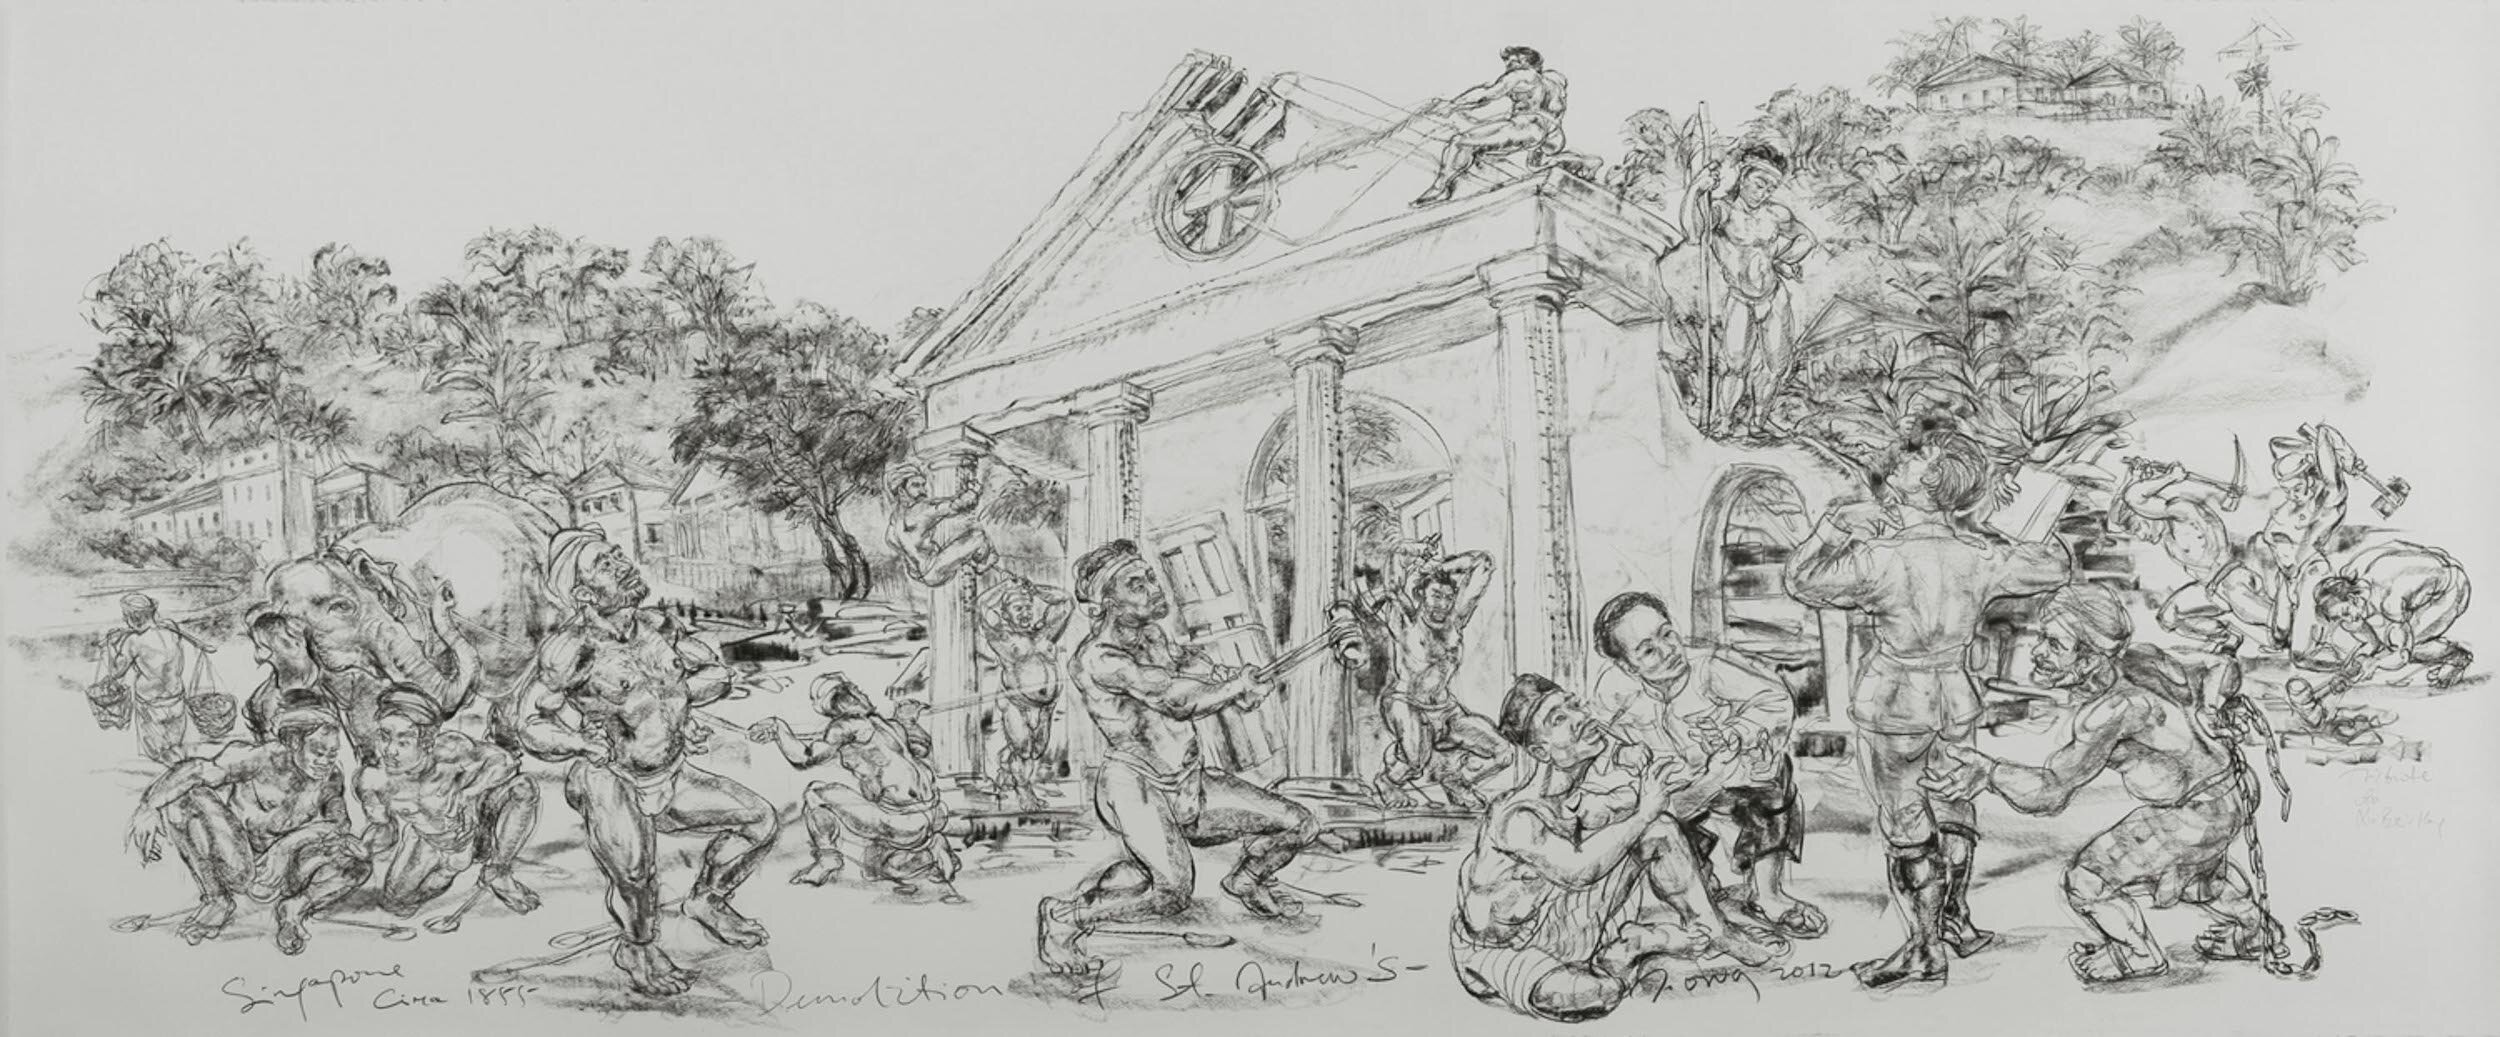 Jimmy Ong, 'Demolition of St Andrew's', 2012, charcoal on paper, 128.5 x 309cm. Image courtesy of the artist and FOST Gallery.